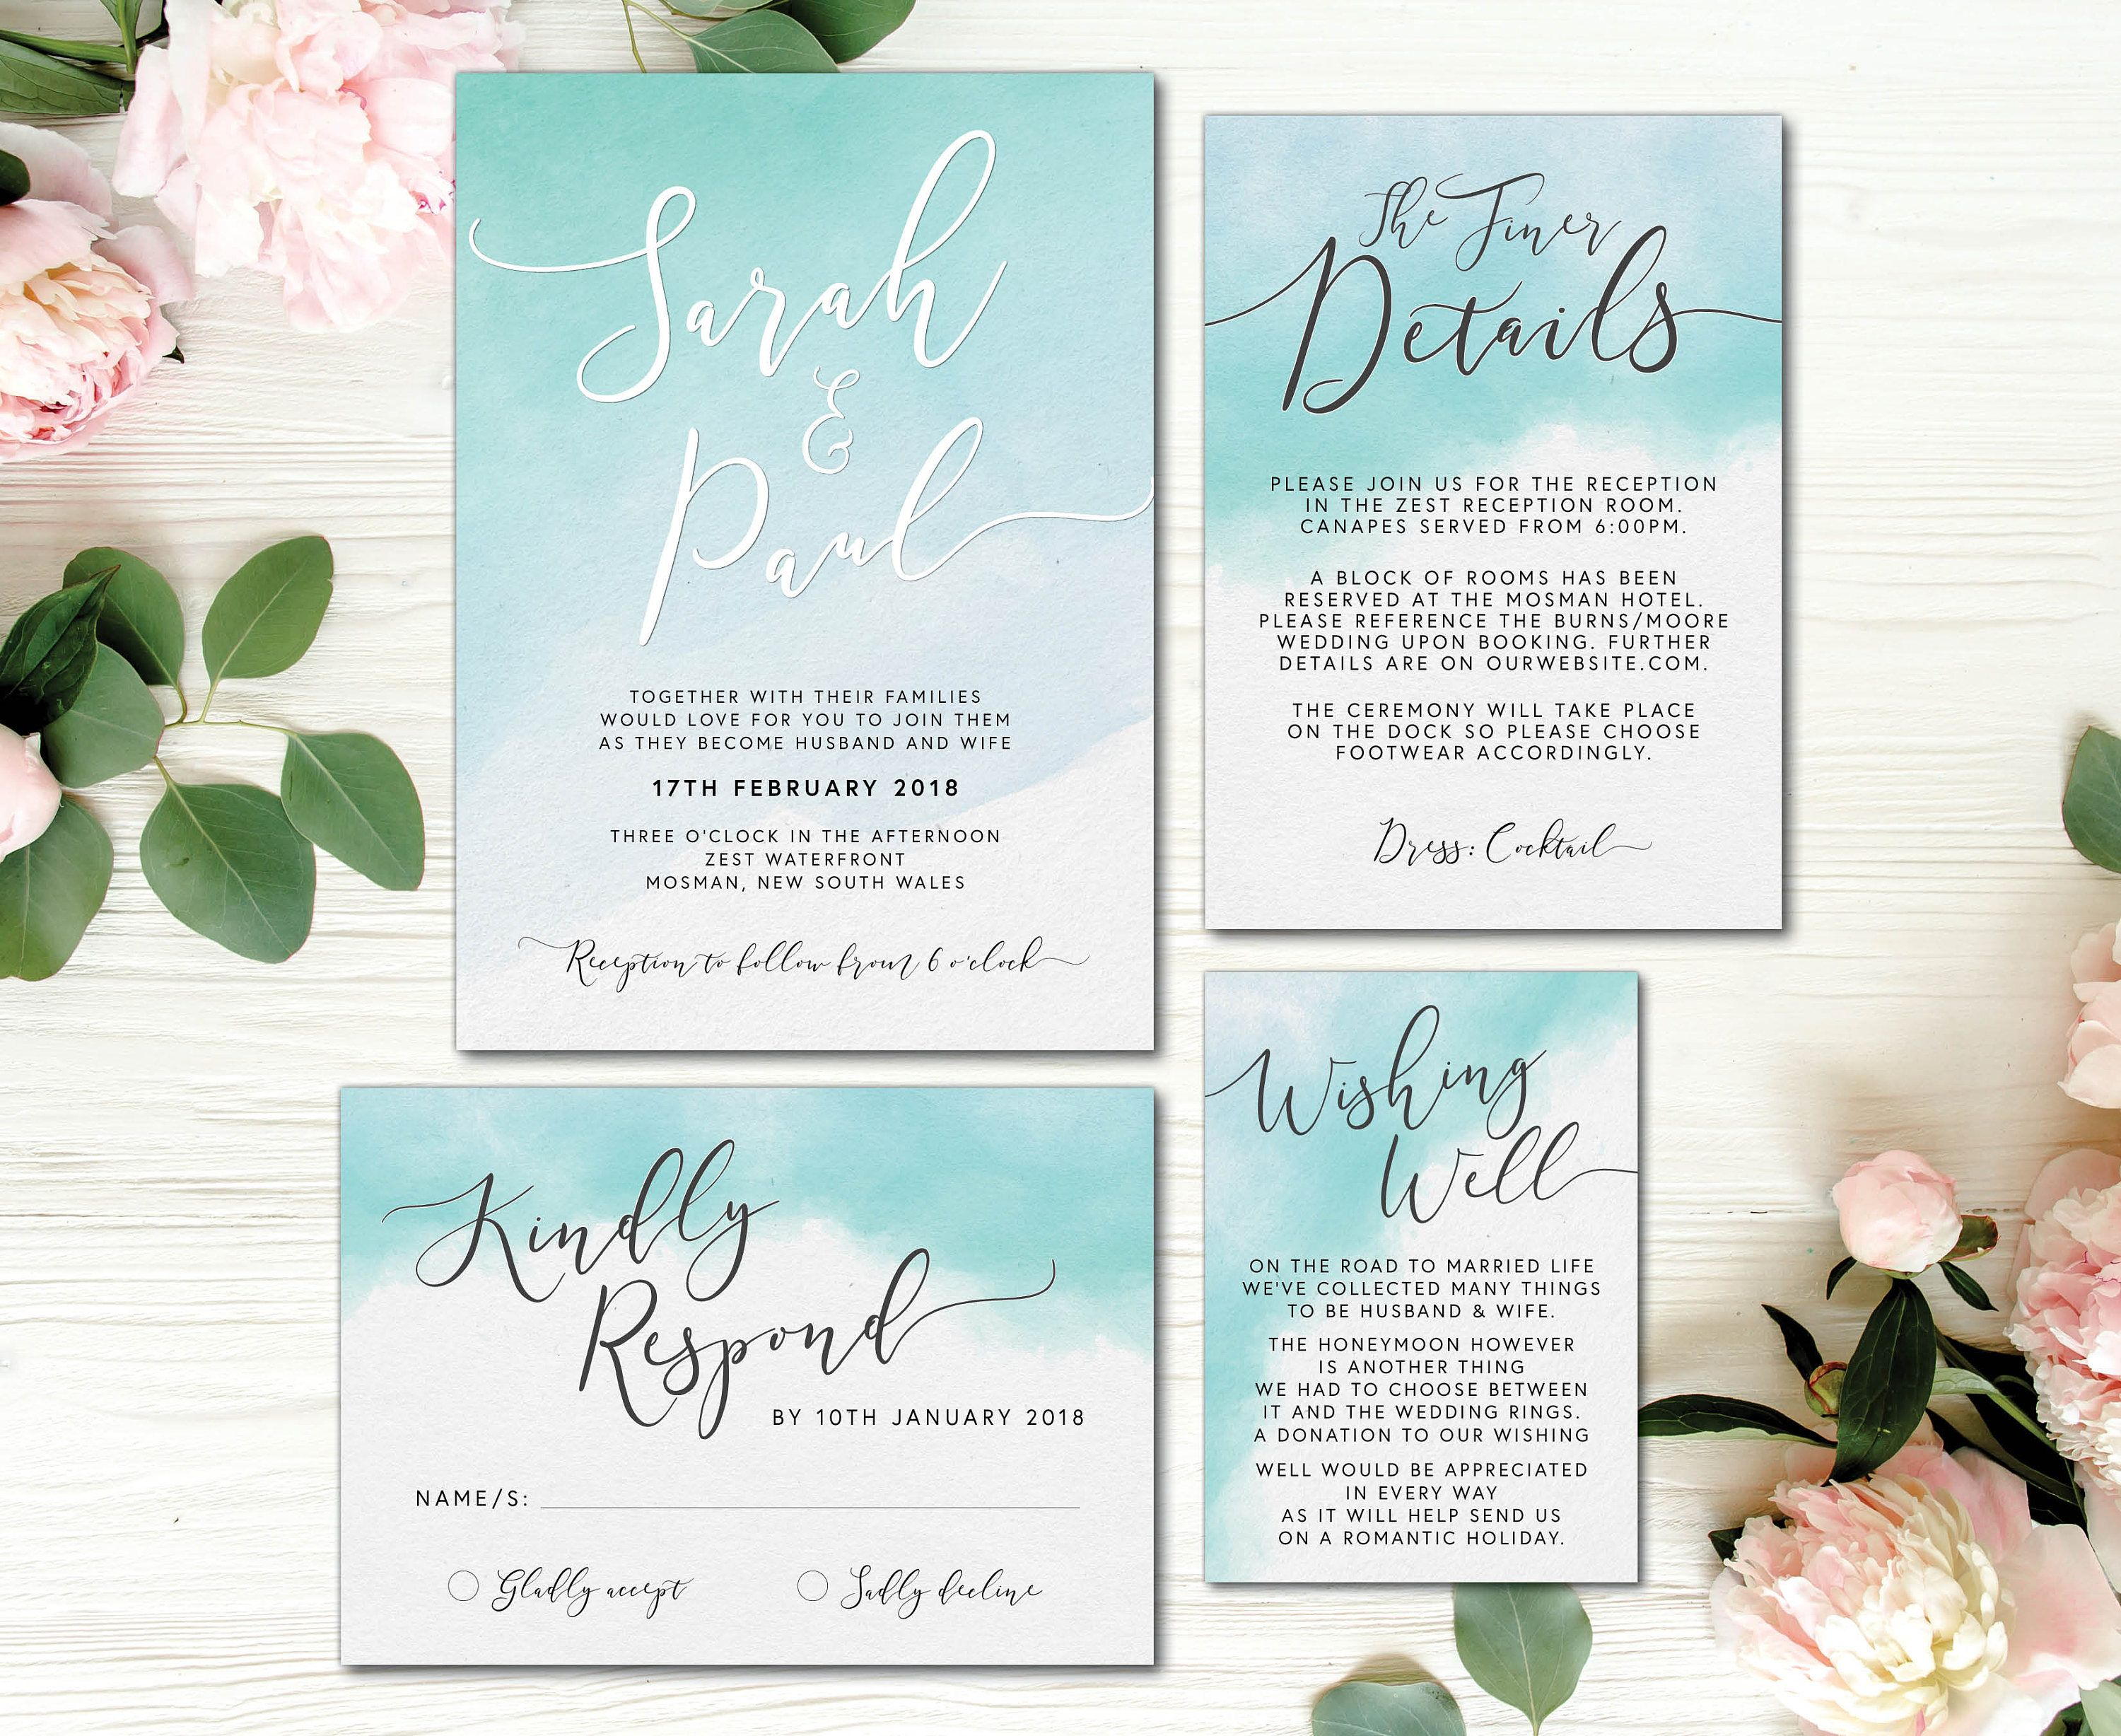 Printed Turquoise Aqua Blue Watercolour Watercolor Wedding Suite W Turquoise Wedding Invitations Easy Diy Wedding Invitations Simple Wedding Invitations